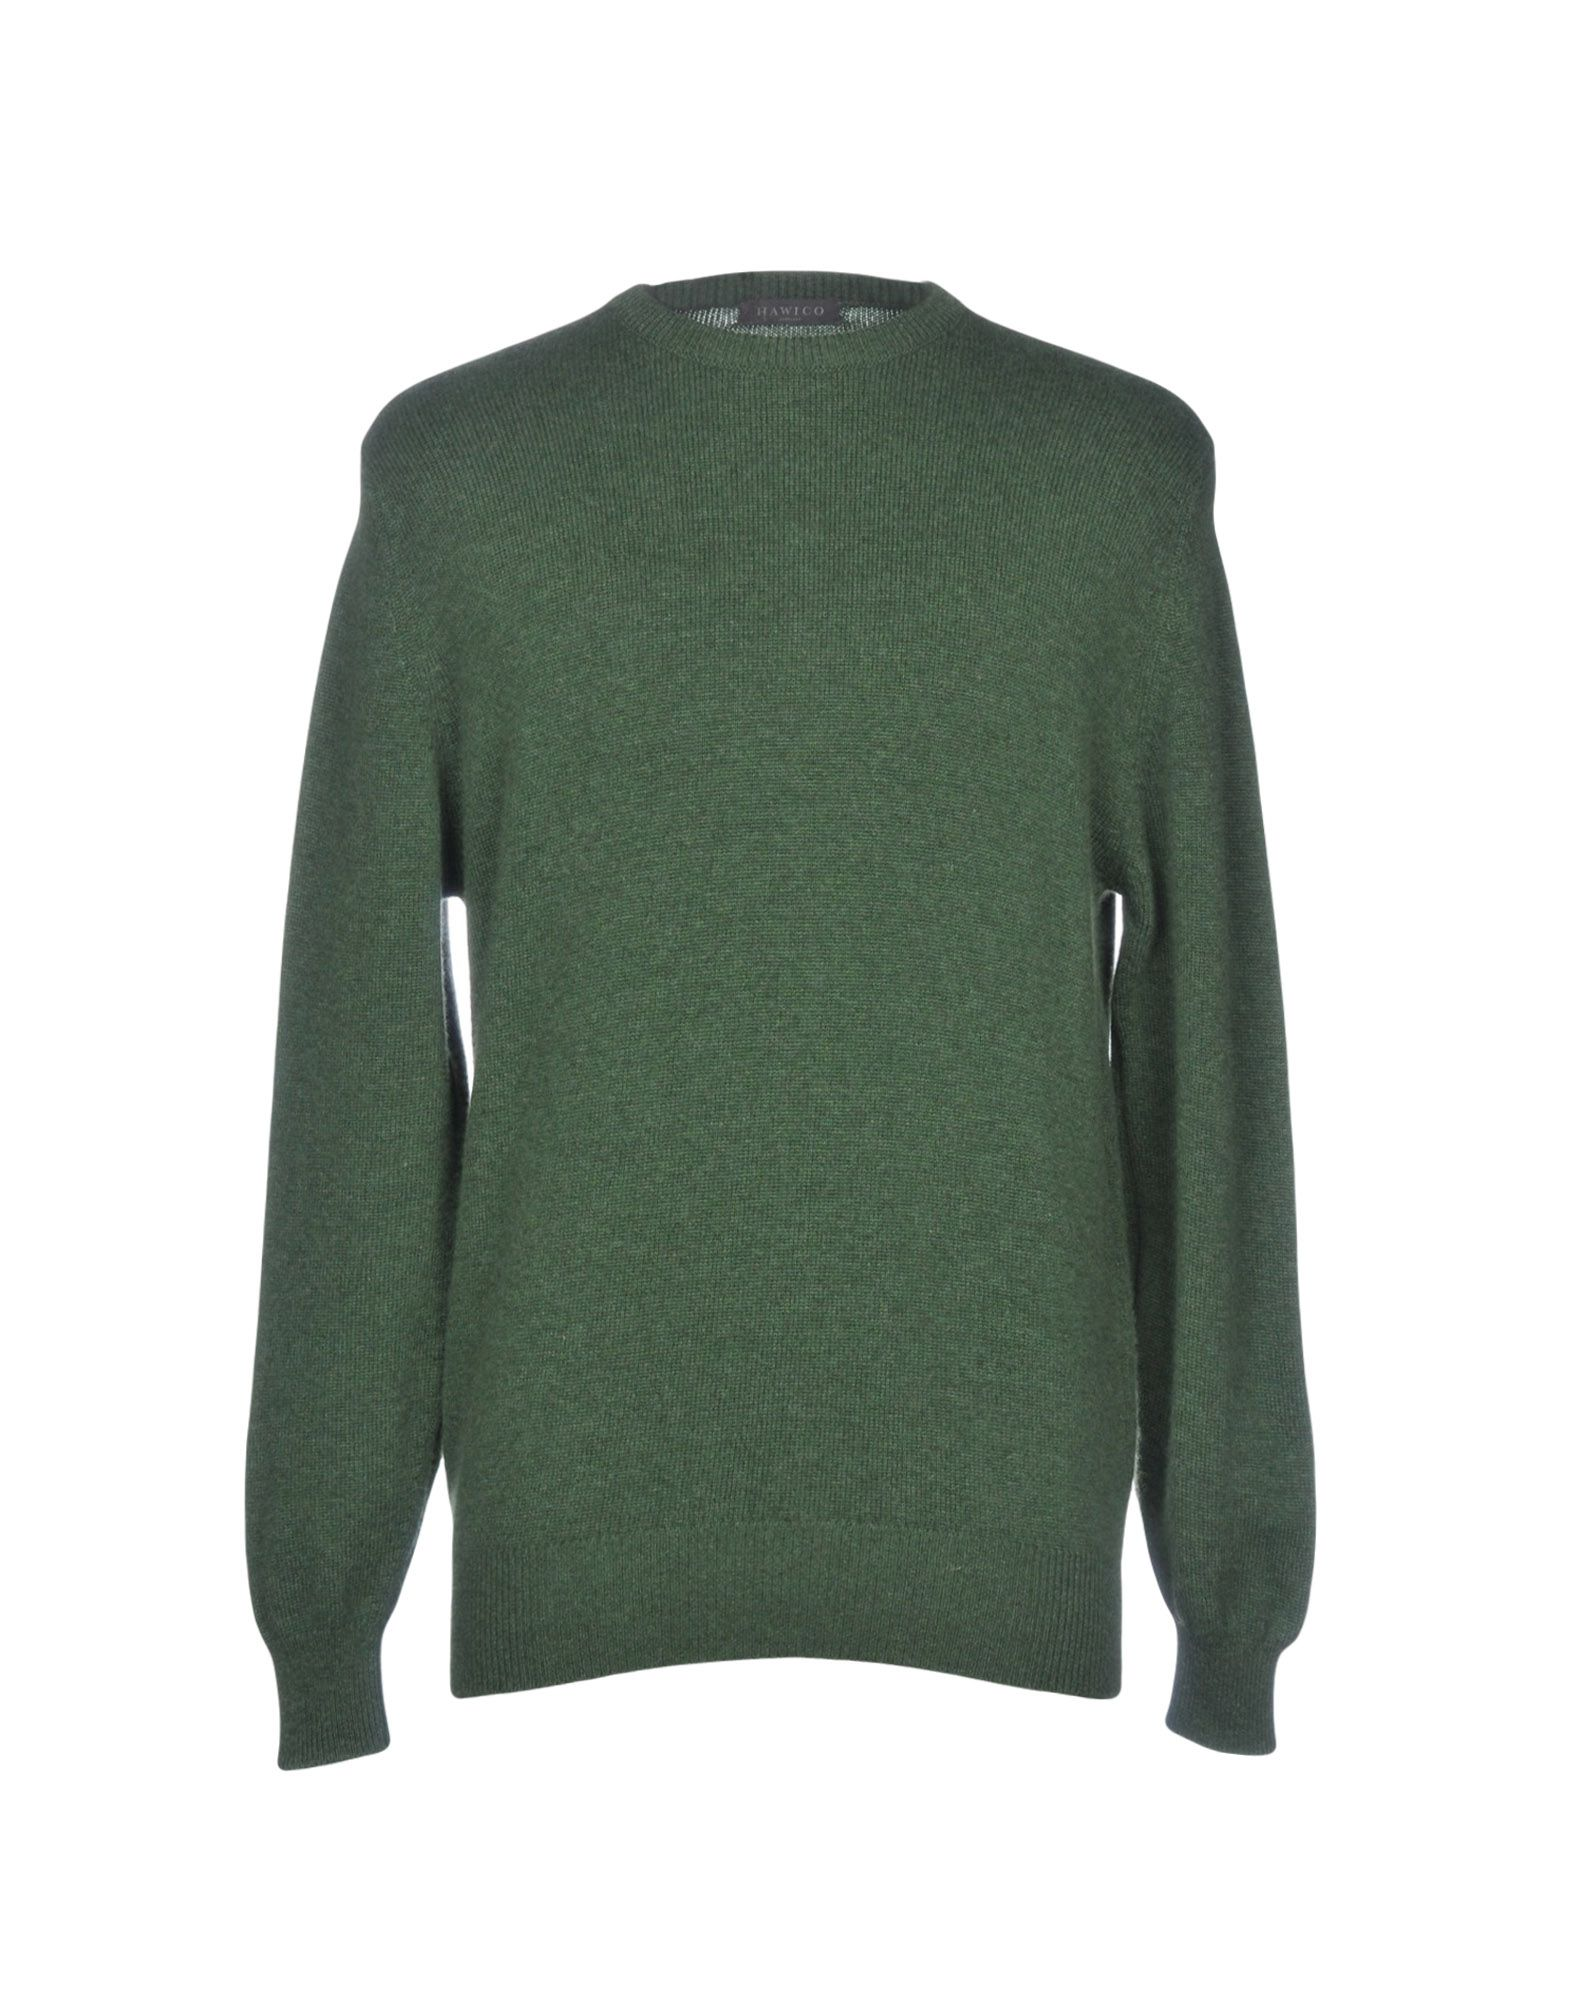 HAWICO Cashmere Blend in Military Green